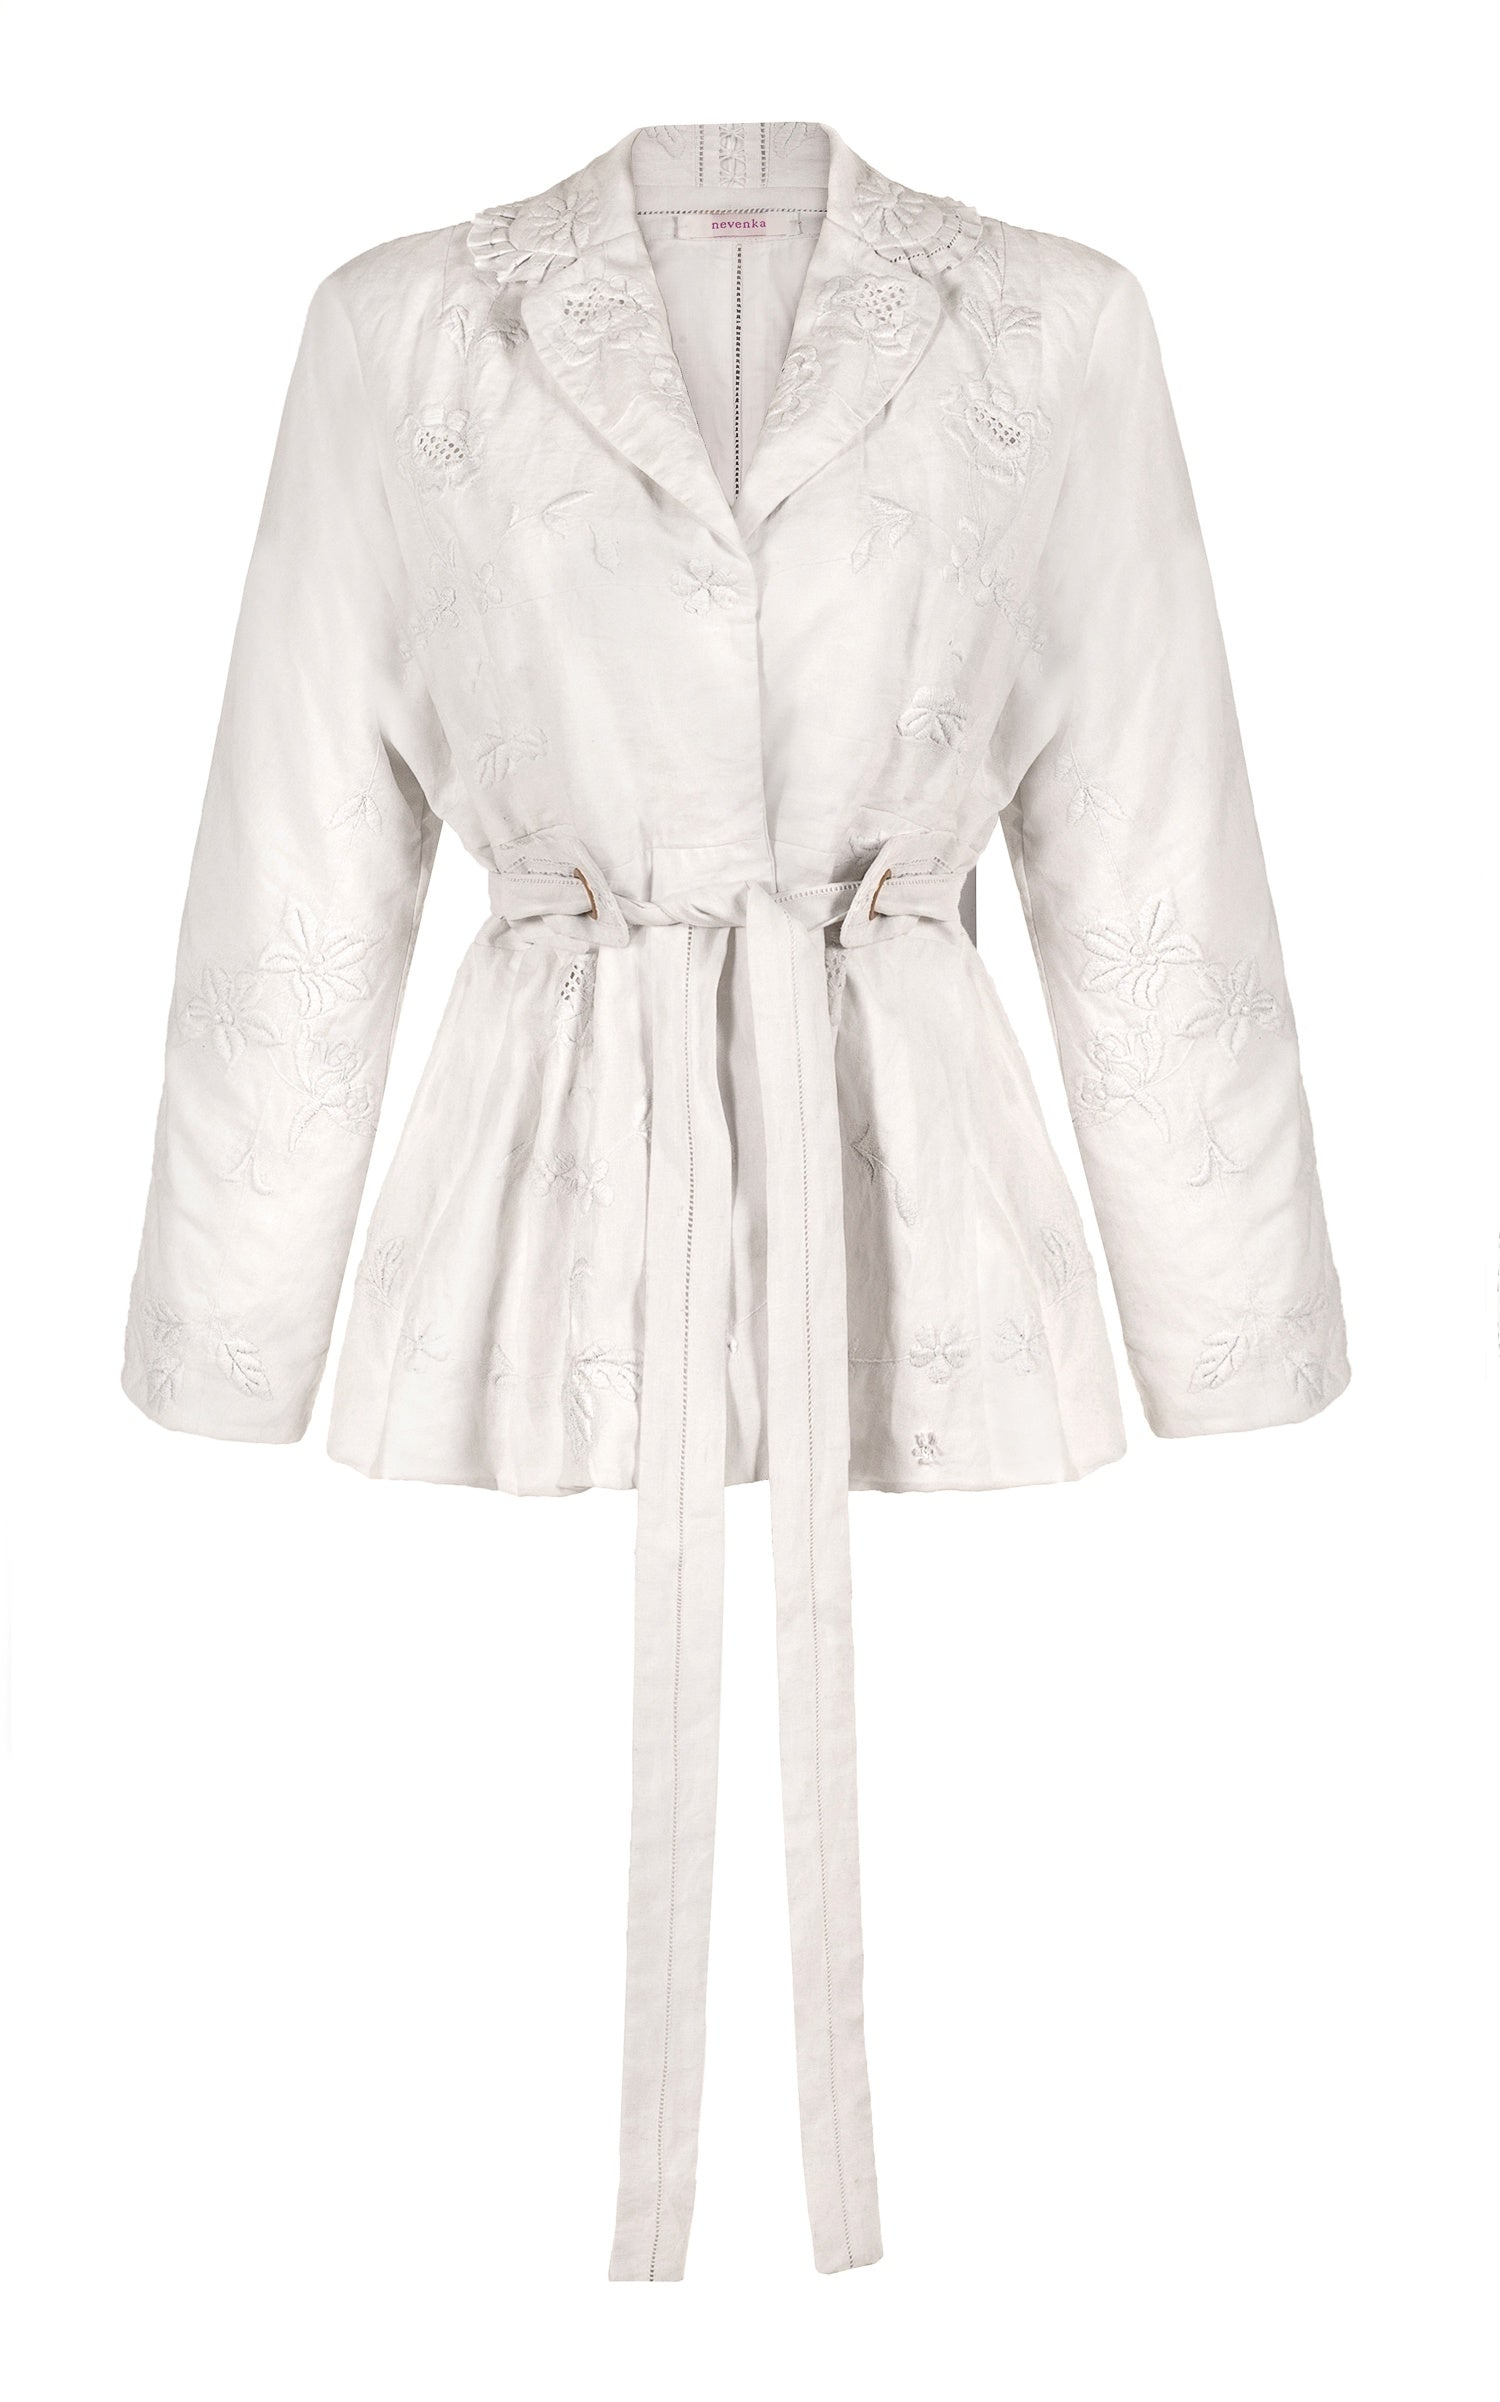 let it rain down on me white embroidery jacket